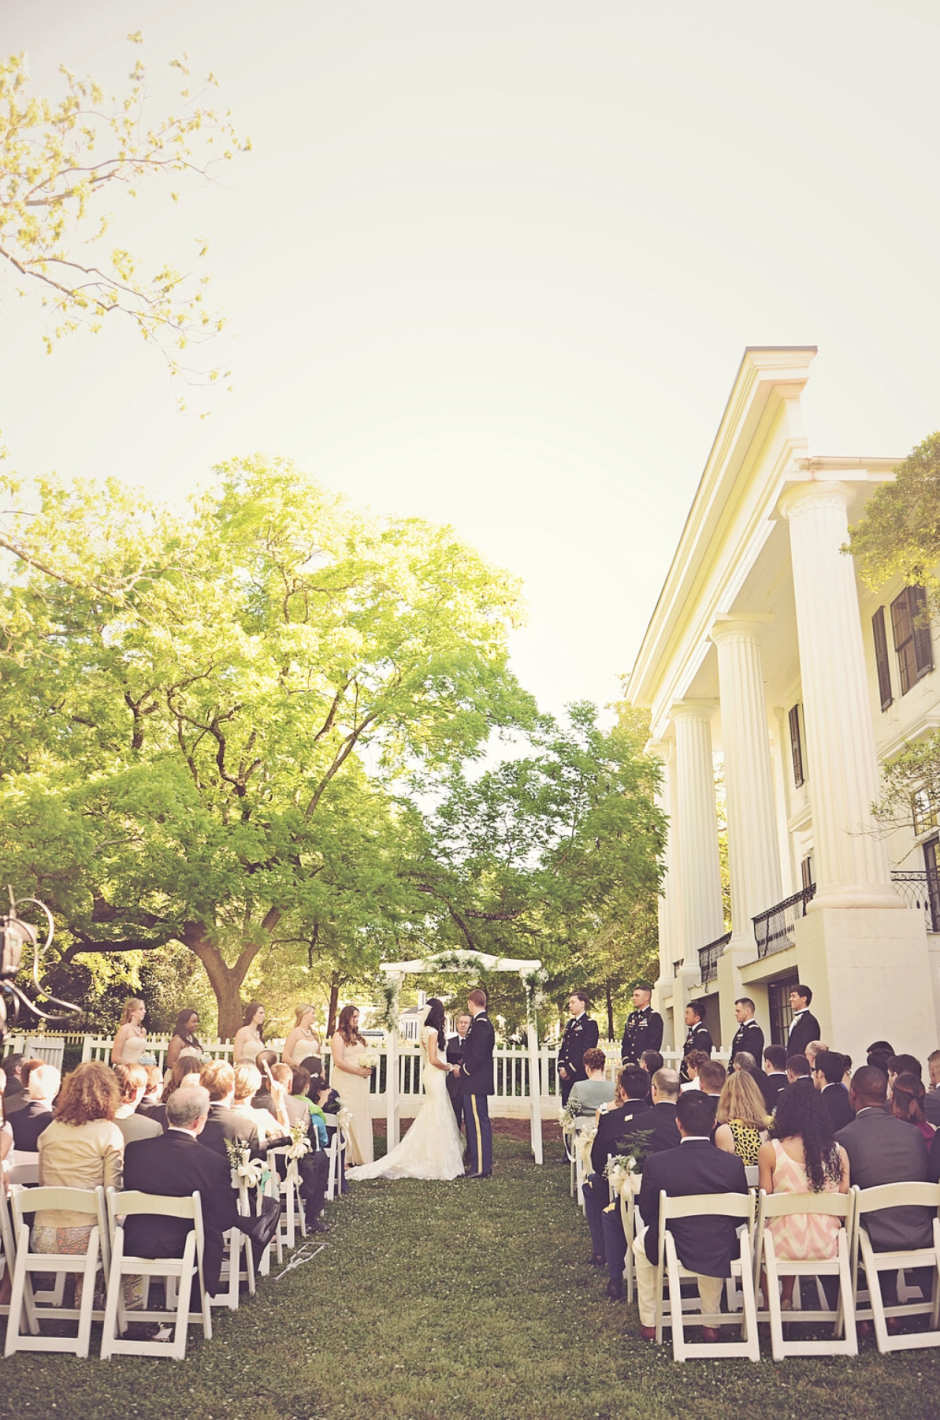 Antebellum Mansion Wedding Ceremony Georgia - Chair Rental Atlanta - Taylor Grady House